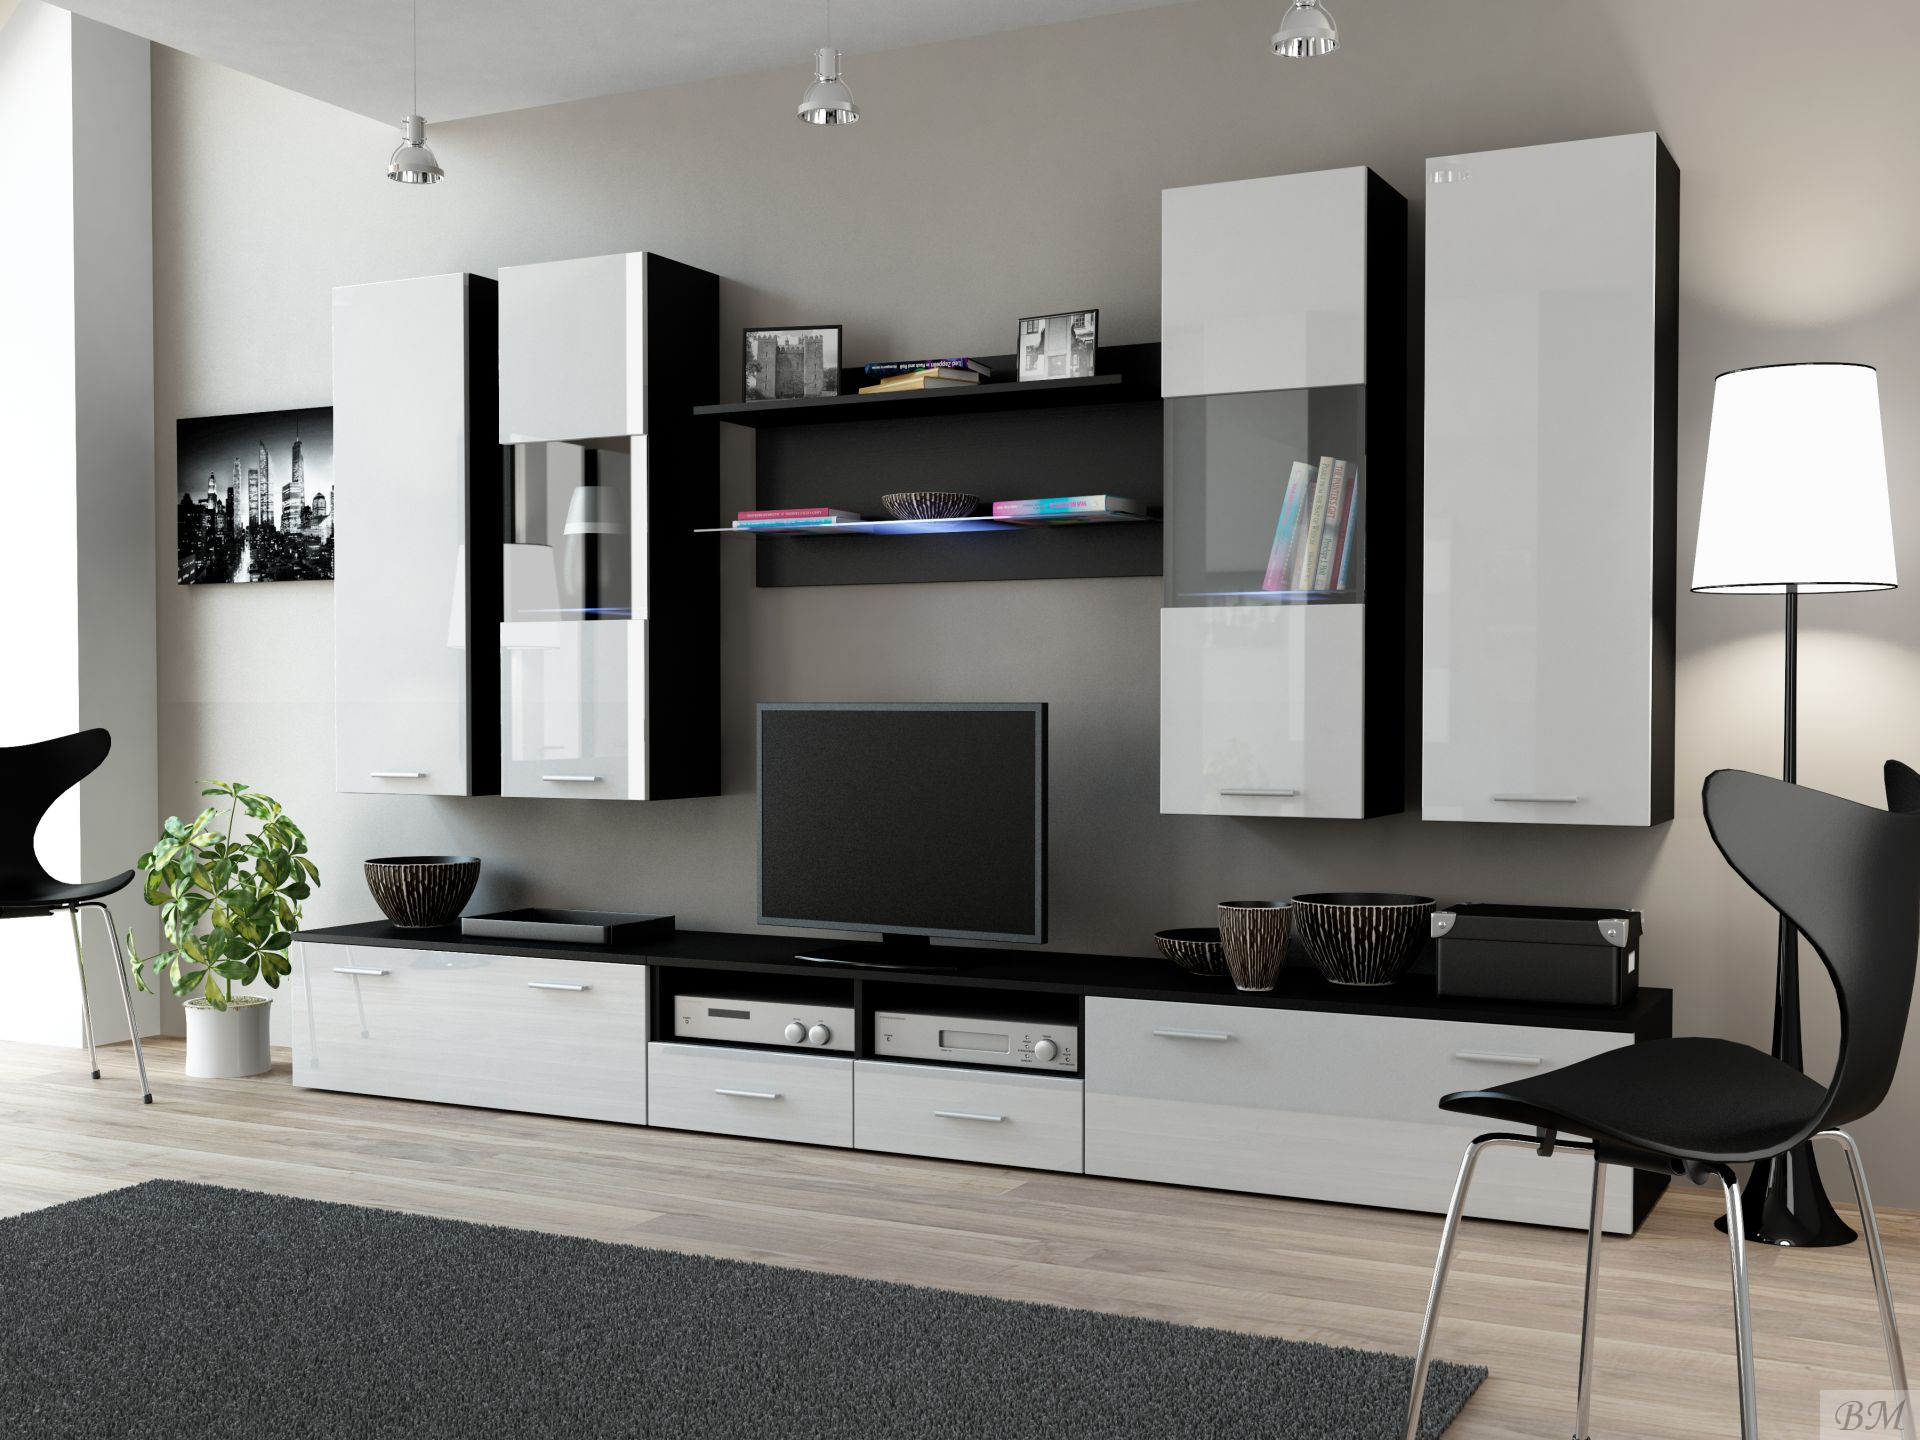 Contemporary entertainment wall units for your living room idea modern wall unit design ideas pictures inspiration and decor modern wall units for living